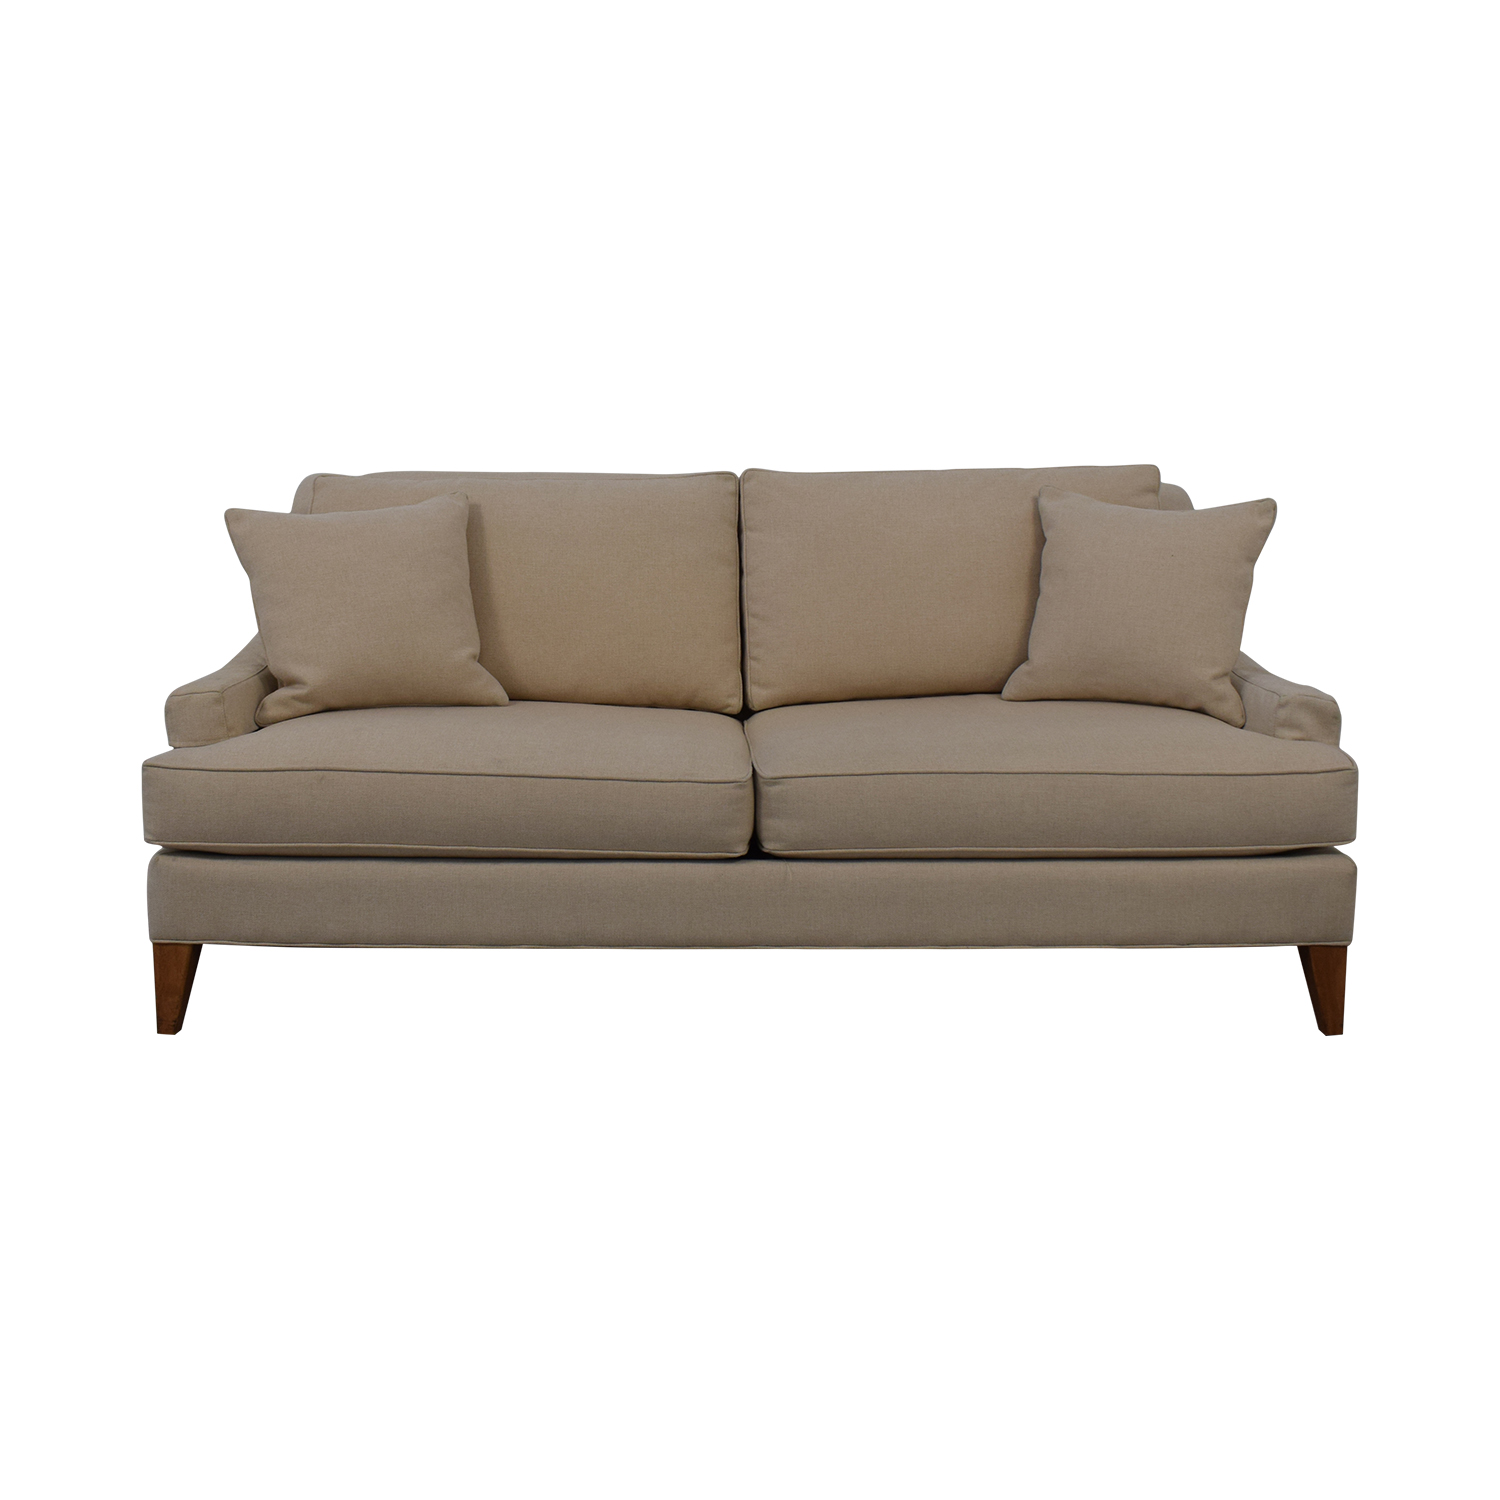 Ethan Allen Ethan Allen Emerson Sofa on sale